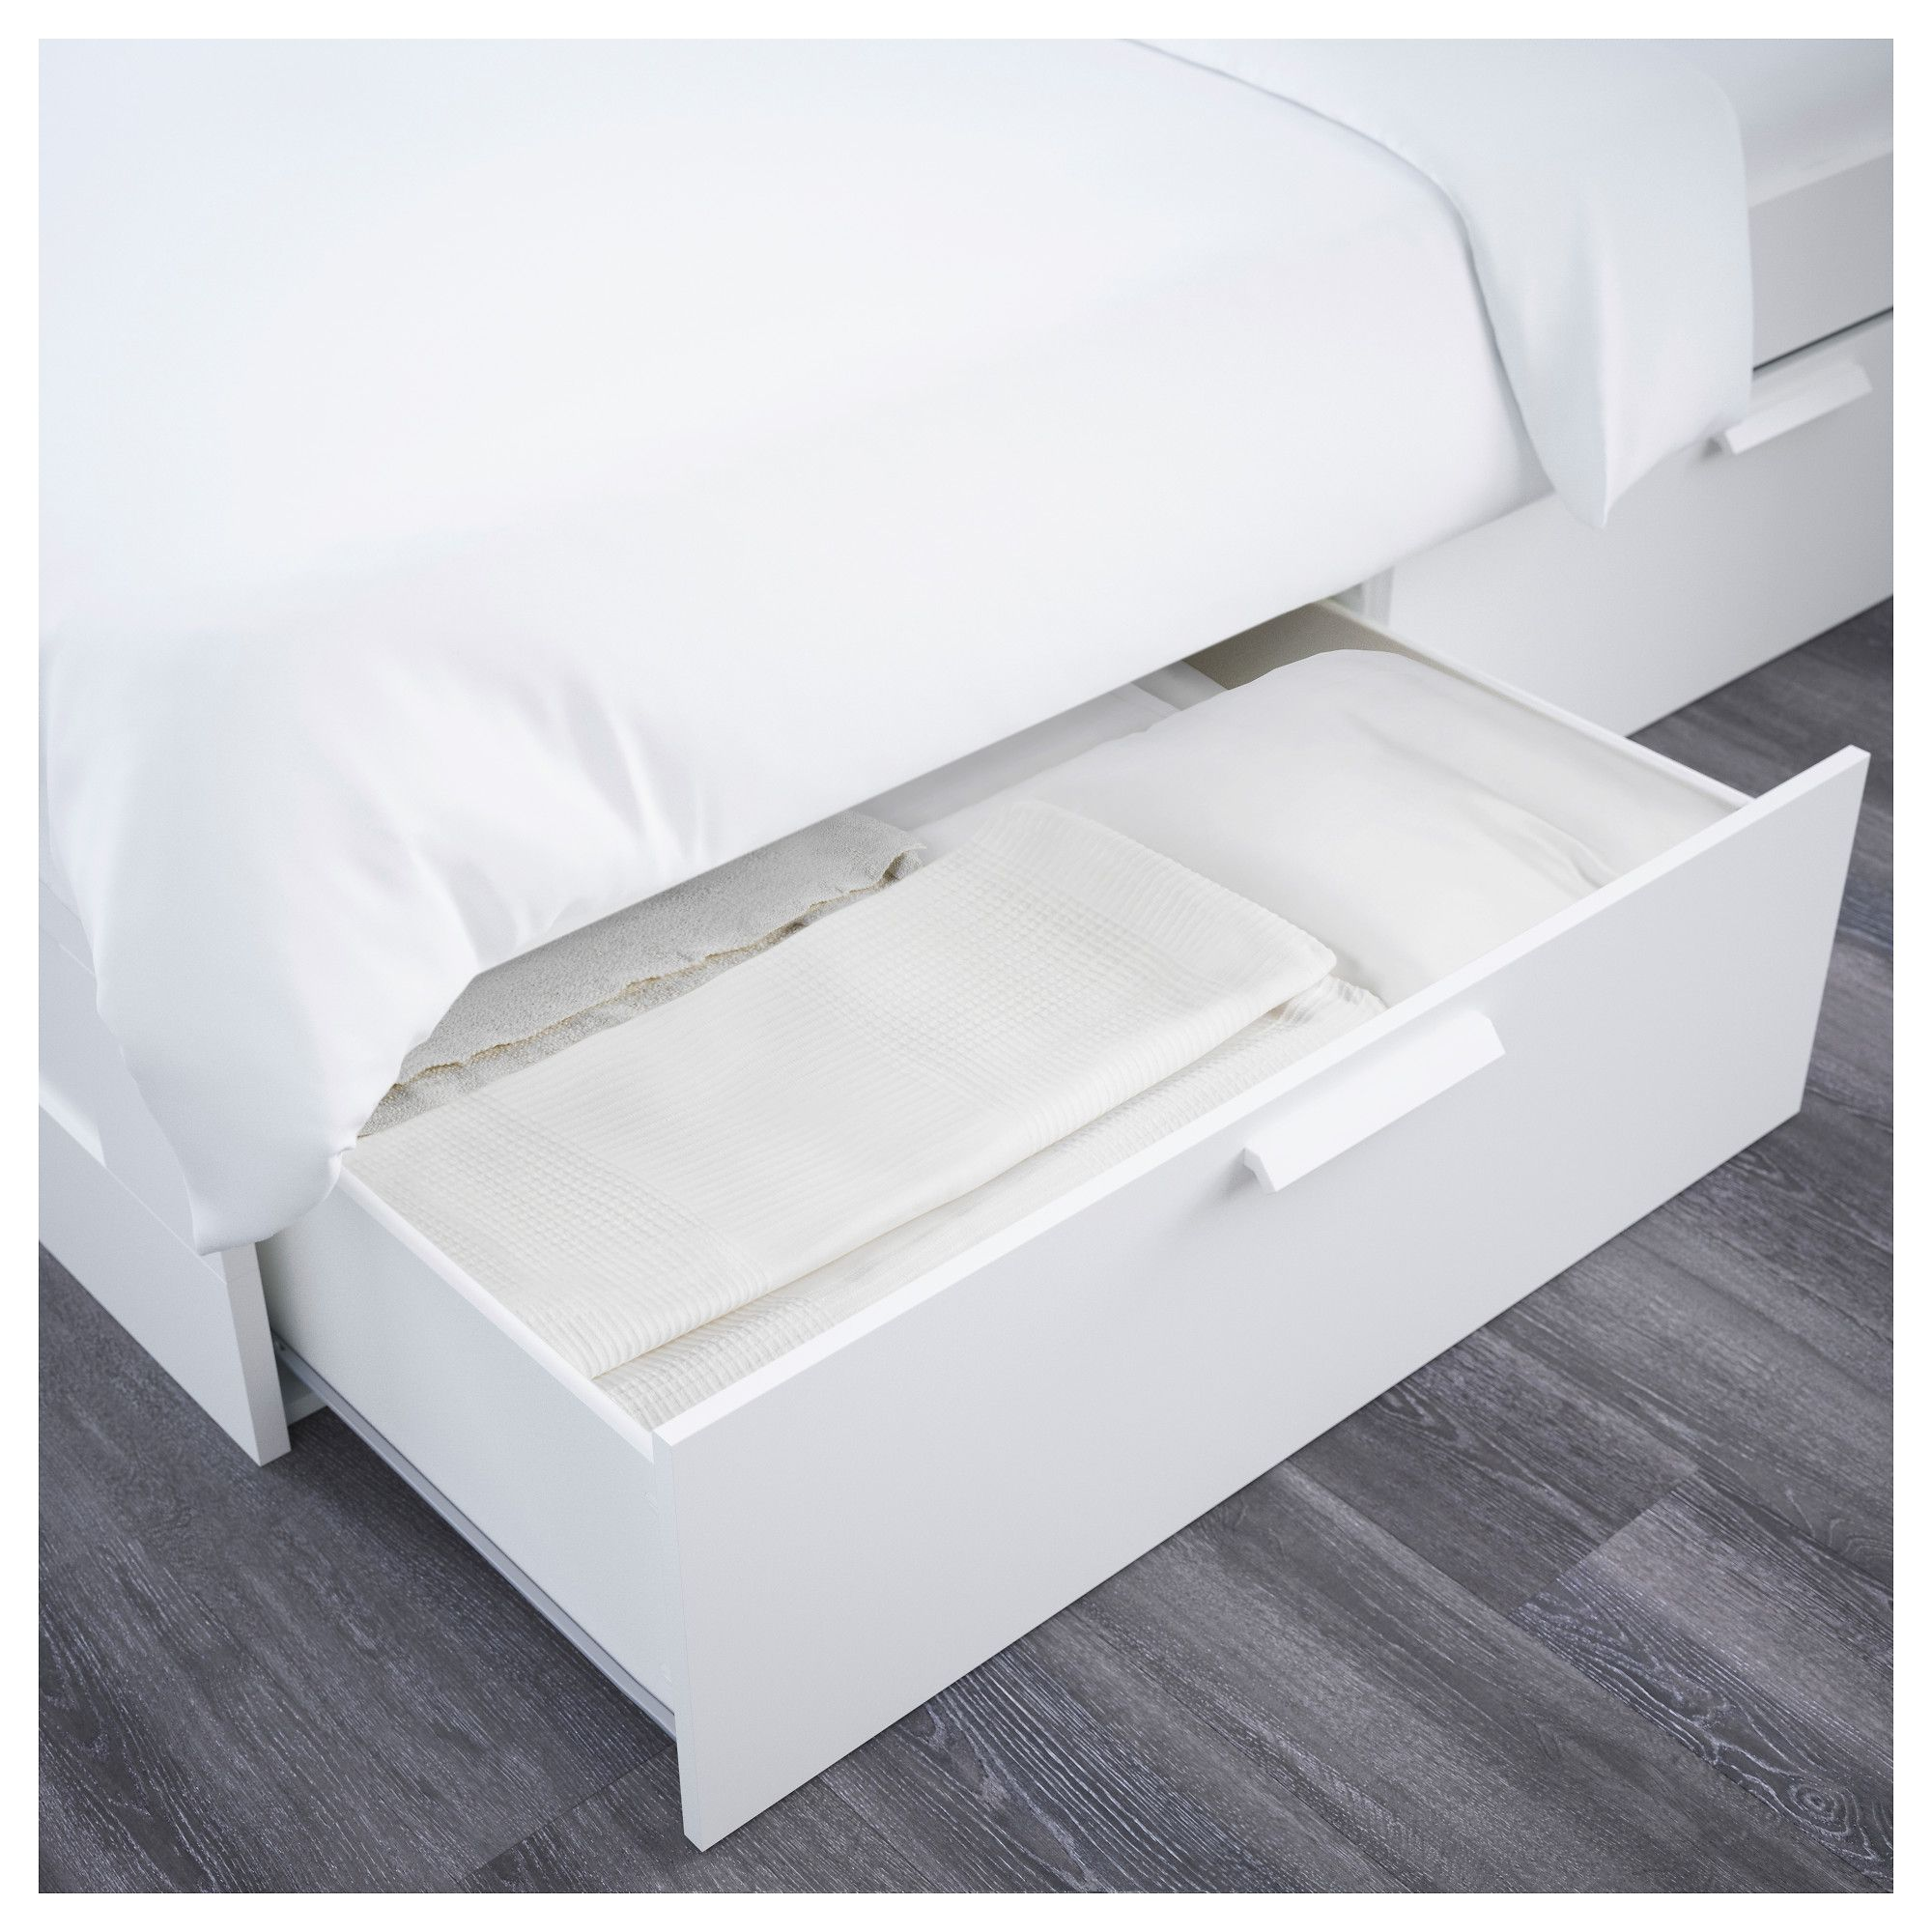 BRIMNES Bed frame with storage & headboard, white, Leirsund